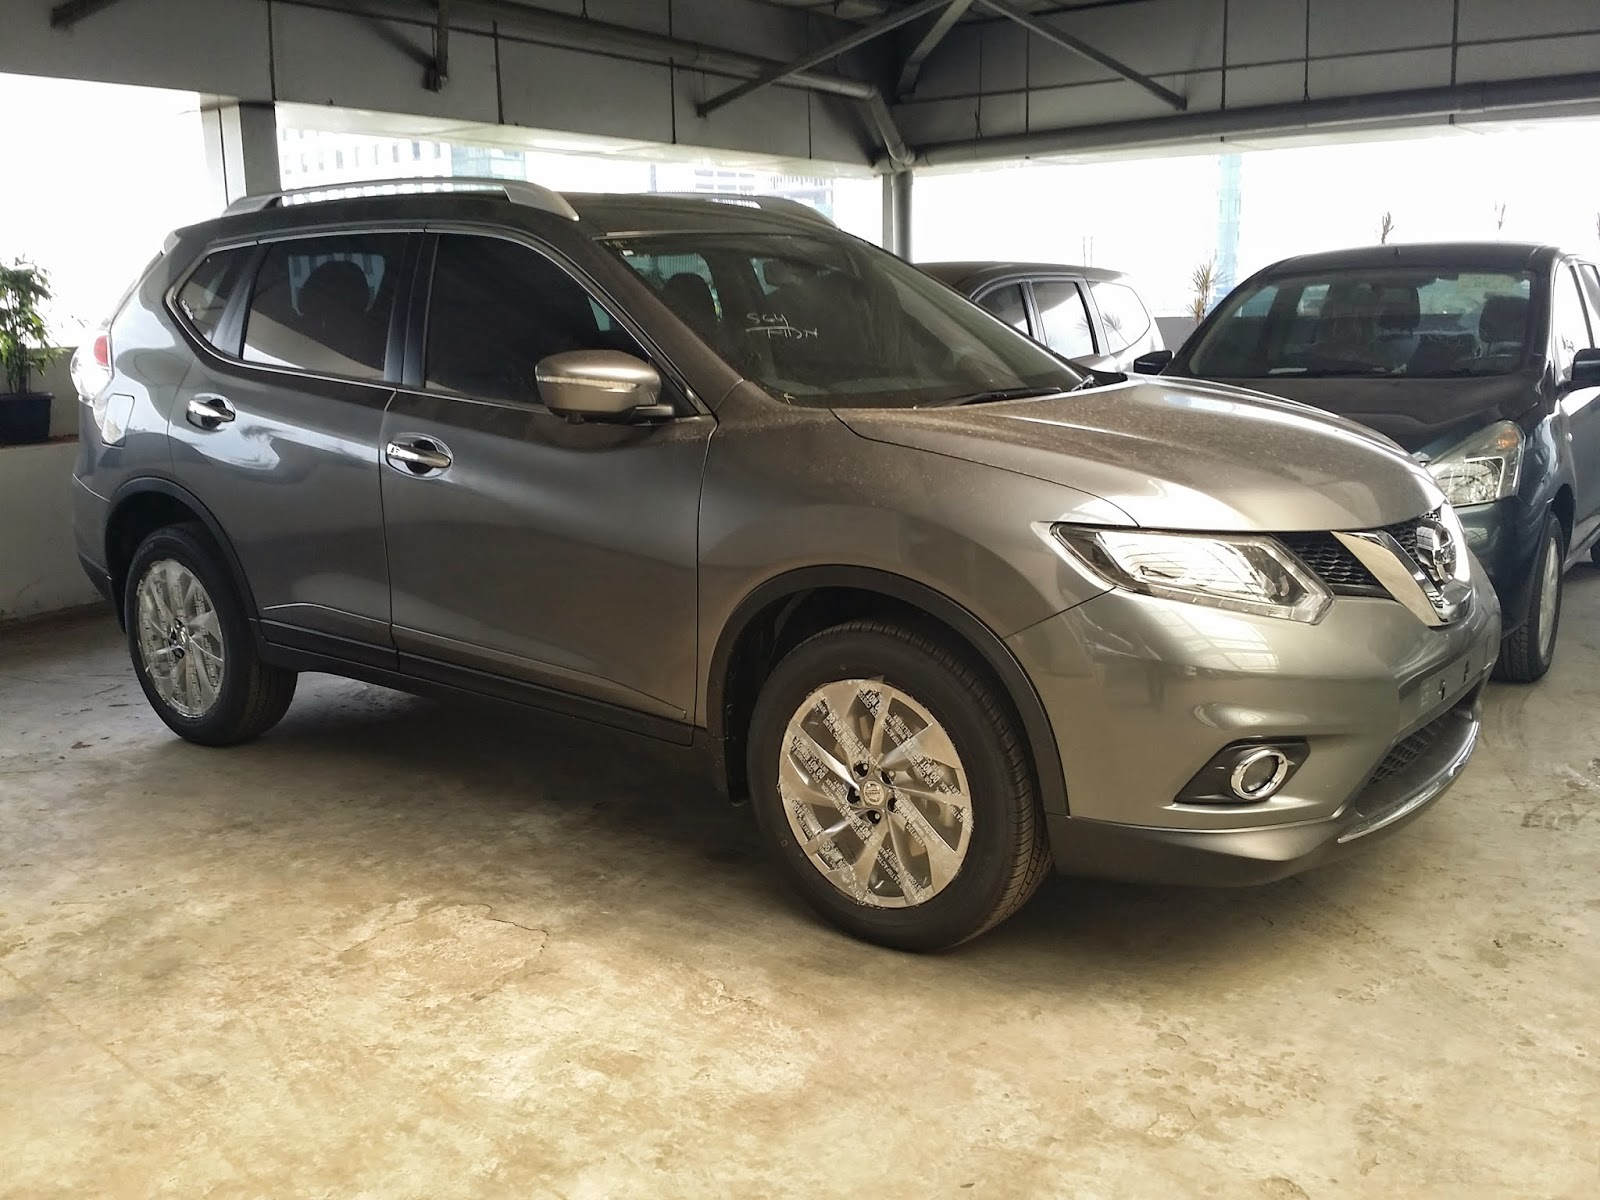 Nissan New Xtrail warna abu-abu metalik atau grey